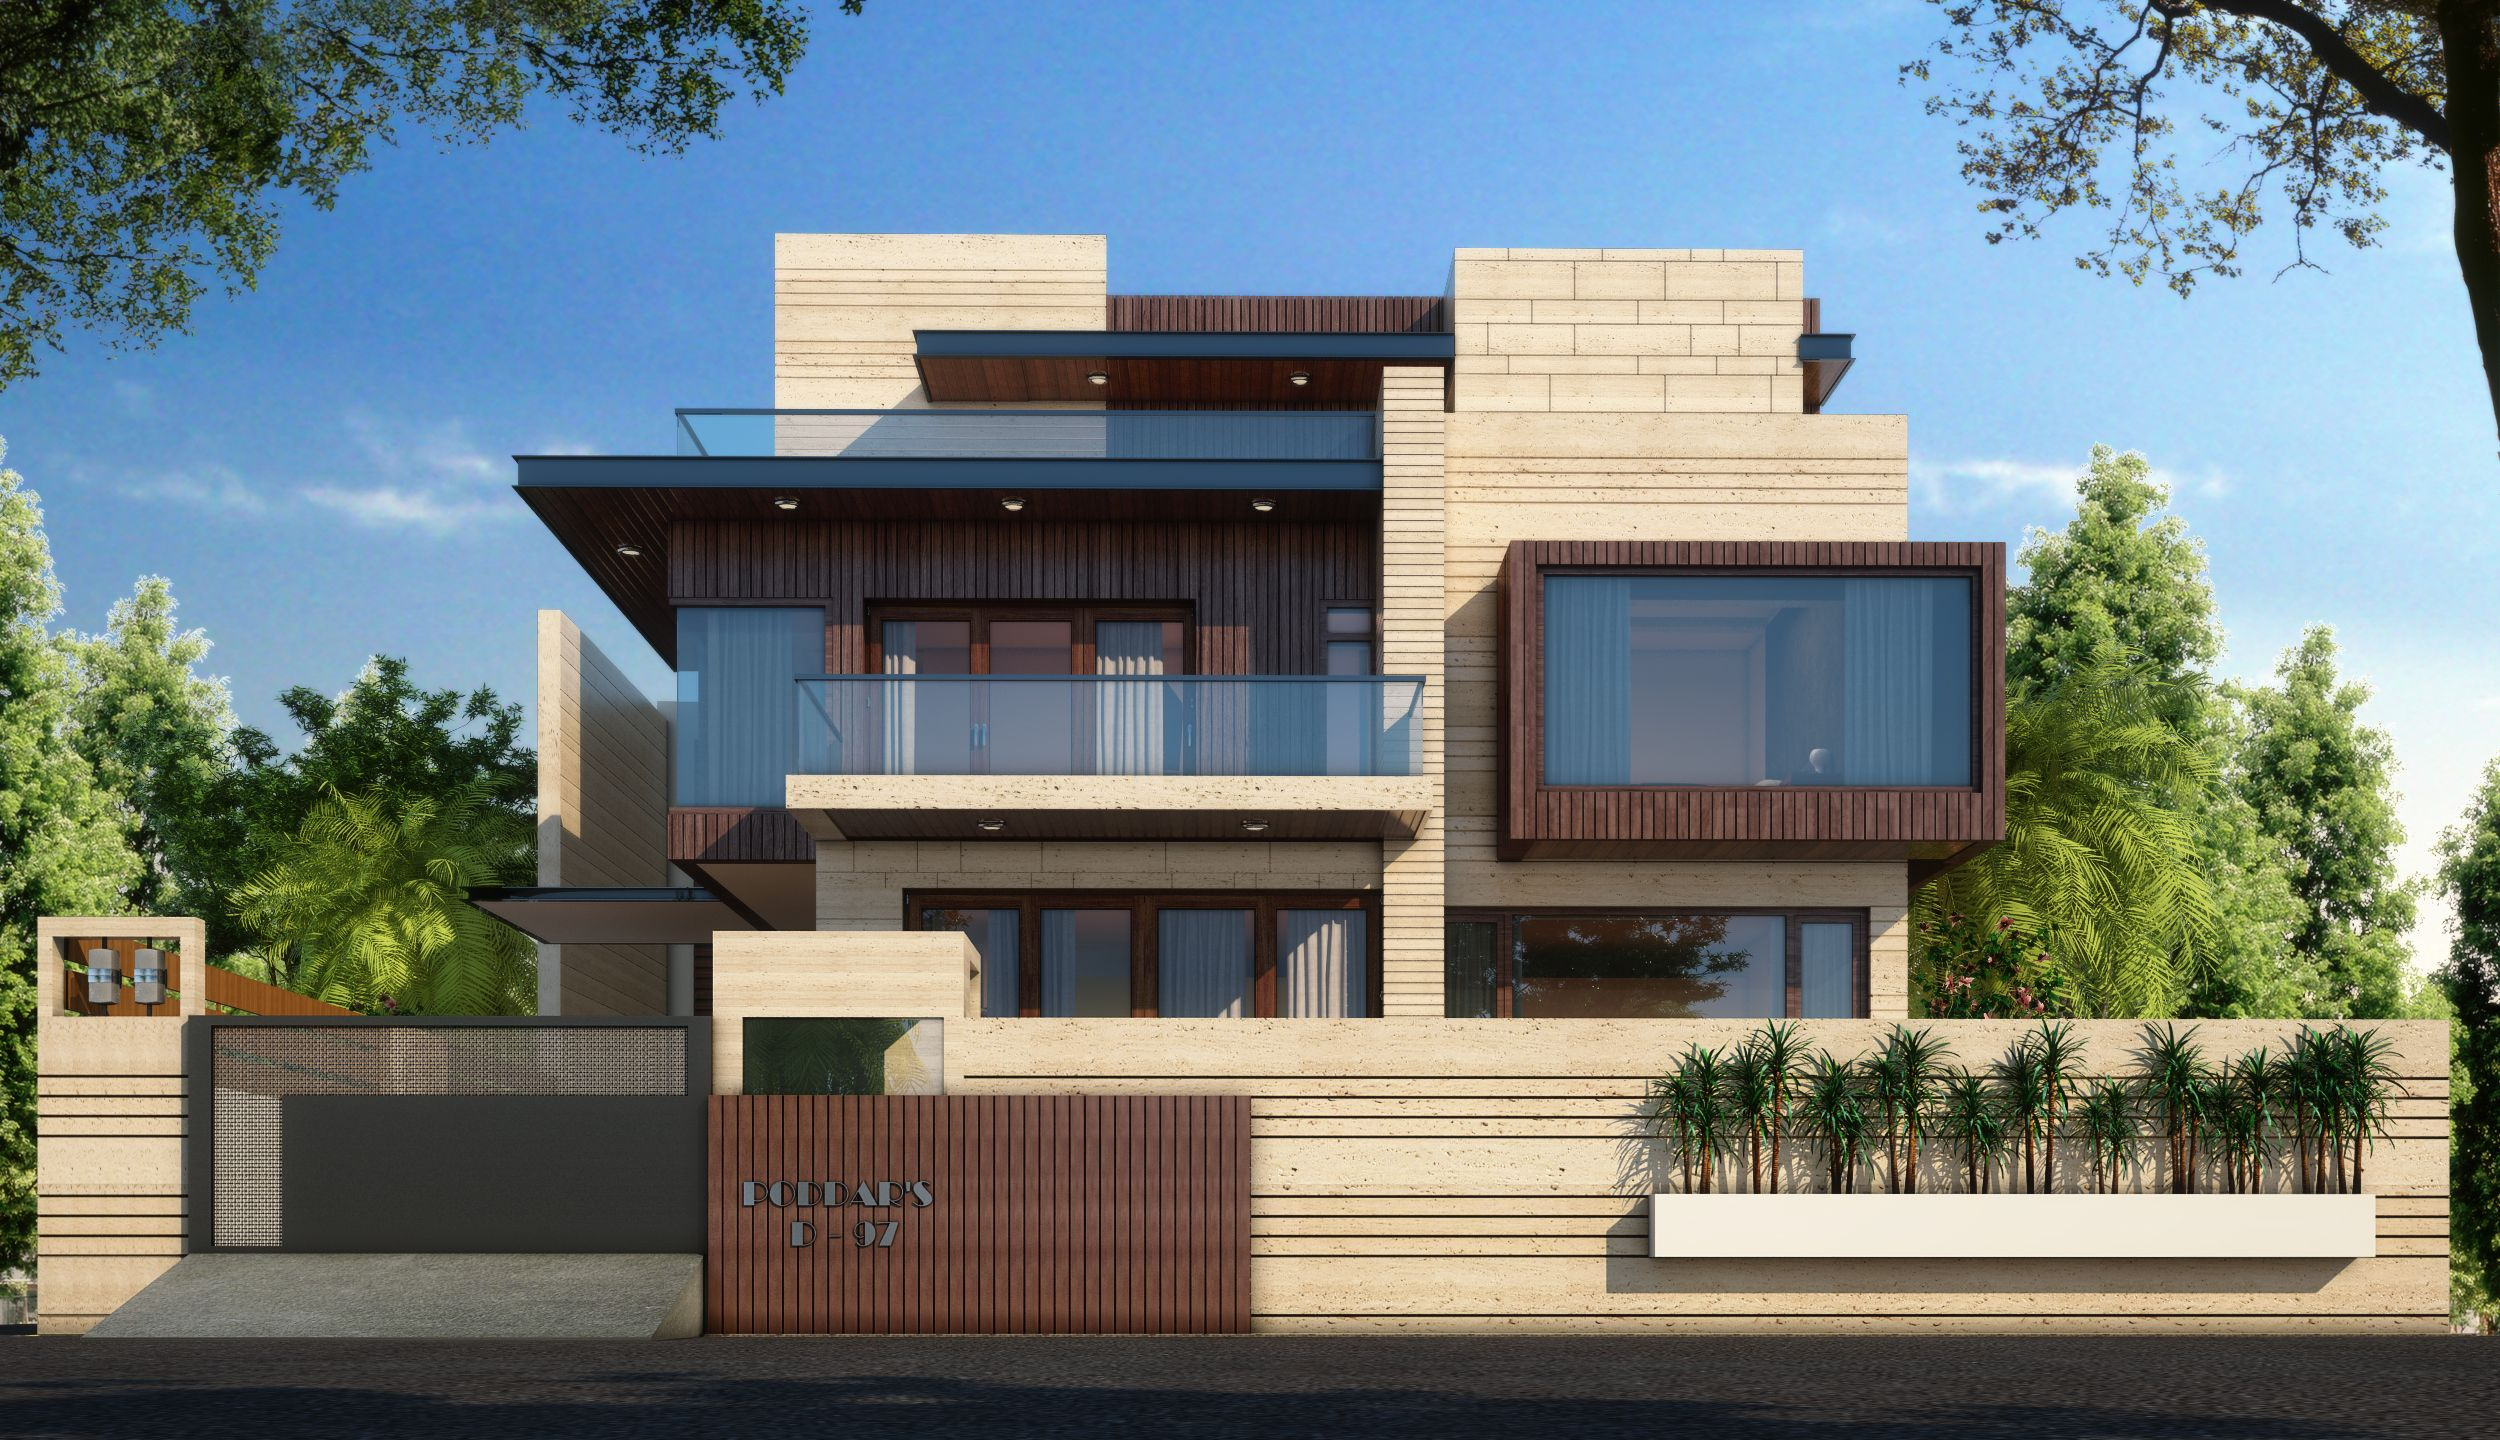 Amazing Front Design Of House In Jaipur Part - 10: Residence At Jaipur | Innovation Inc. Minimalis House DesignHouse ...